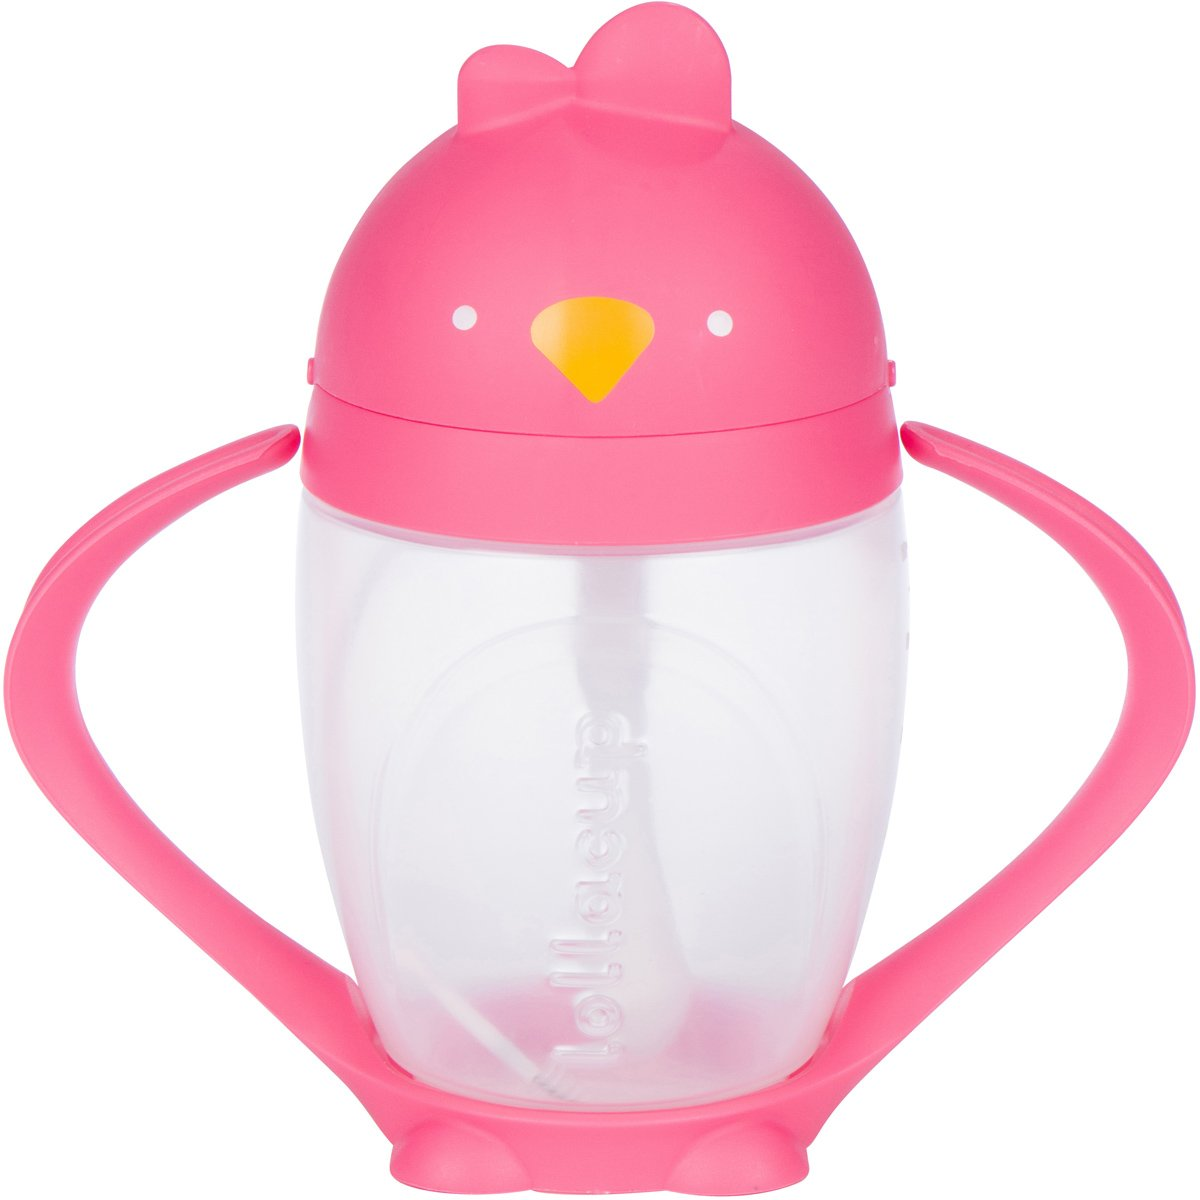 Lollaland Lollacup, Pink | 10 oz Straw Sippy Cup with Weighted Straw Made in USA